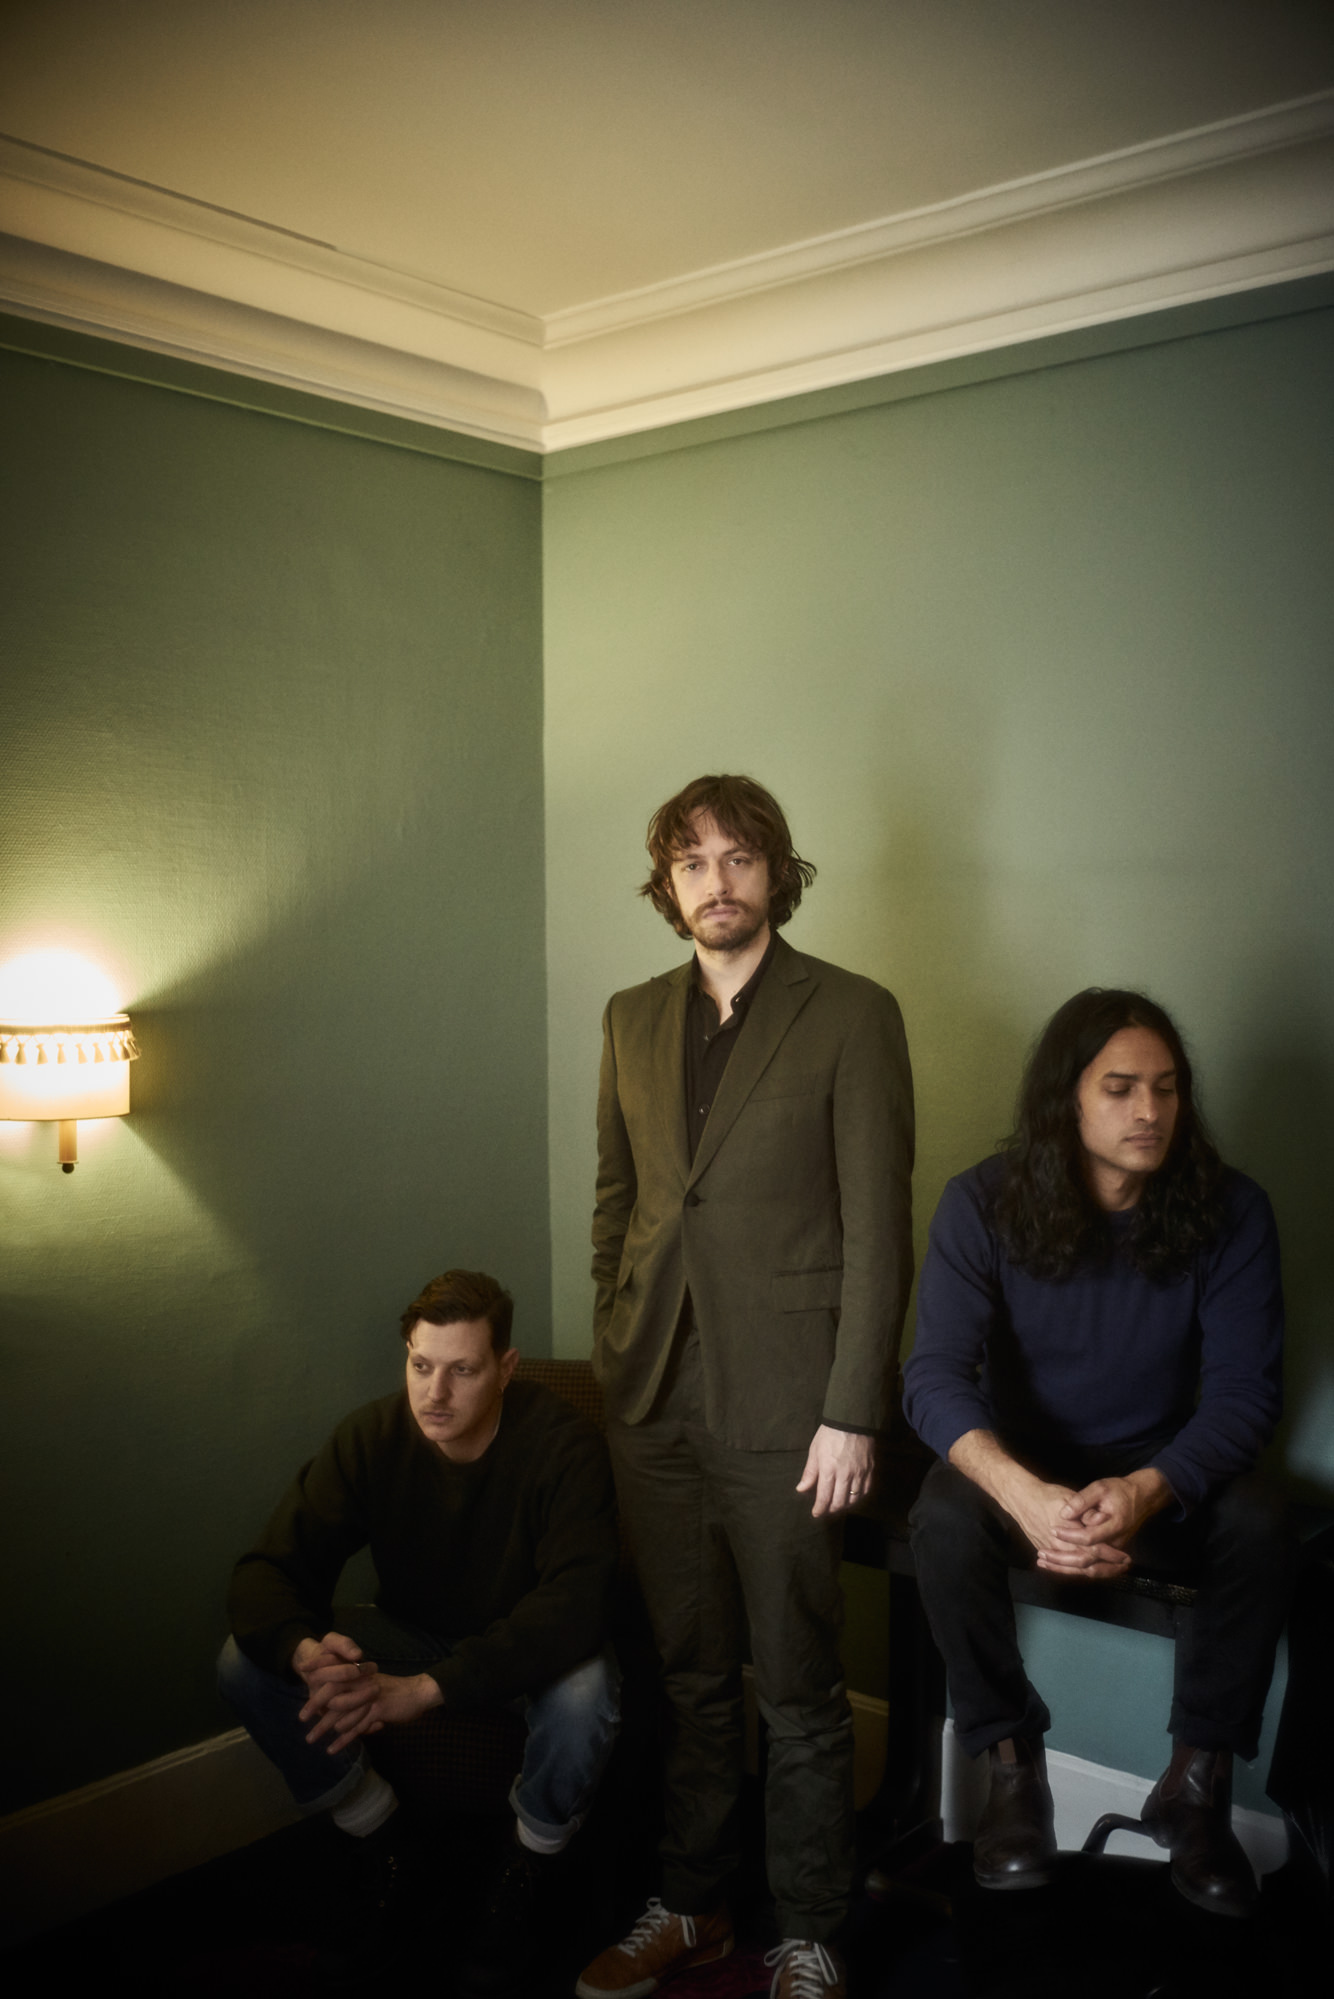 Photo : Stéphane Gallois. Members of the New York band Yeasayer, Ira Wolf Tuton, Chris Keating and Anand Wilder.